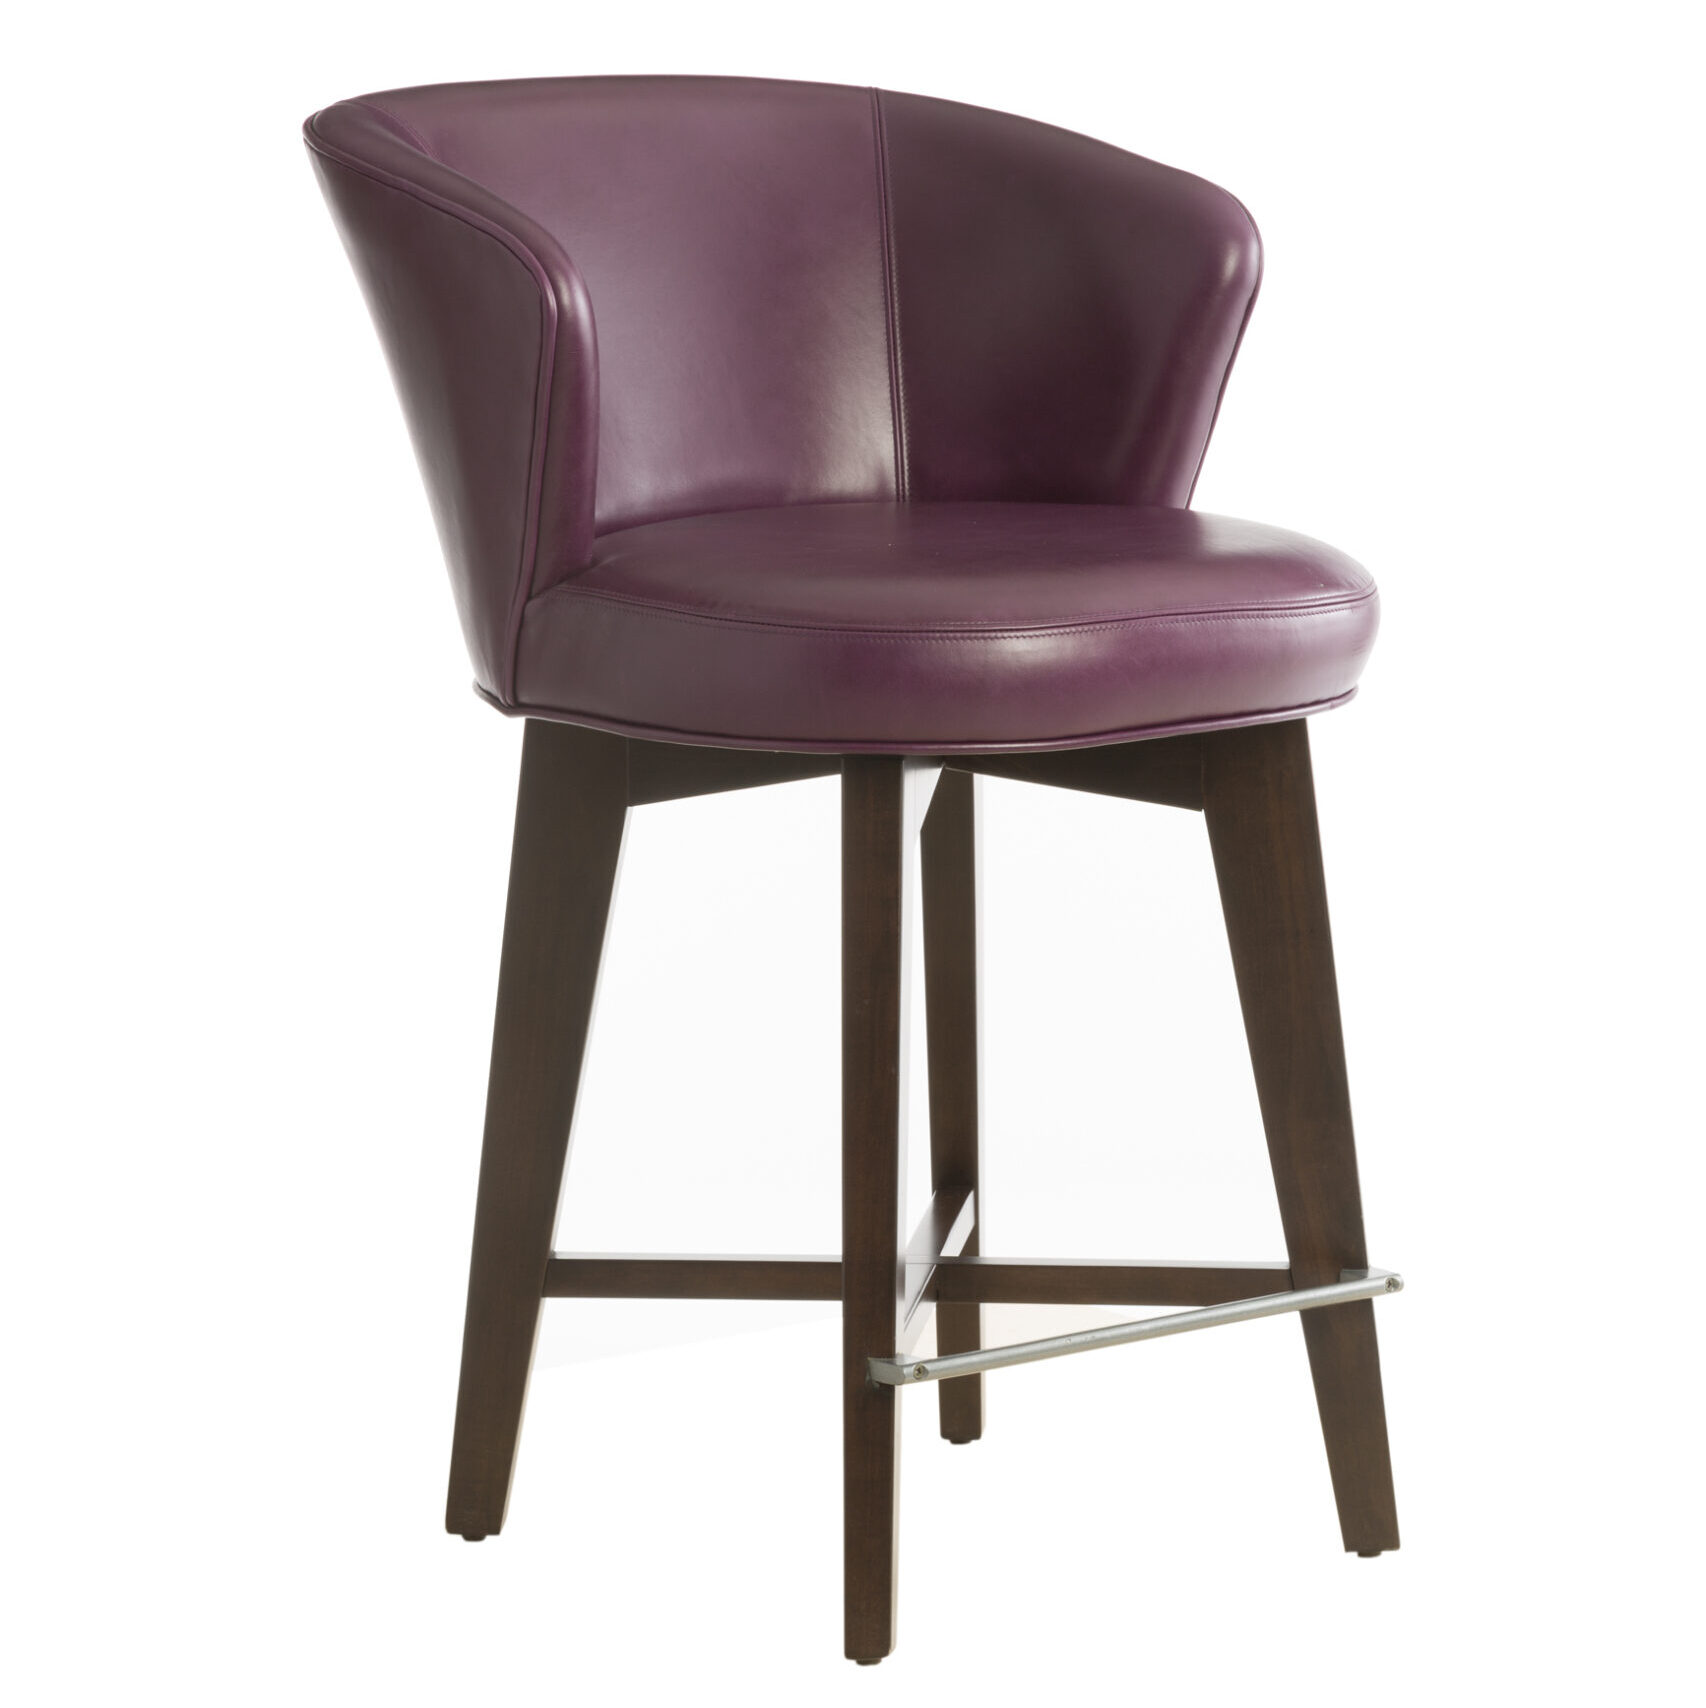 Vogel Deluxe Memory Swivel Stool - Counter height in plum leather upholstery